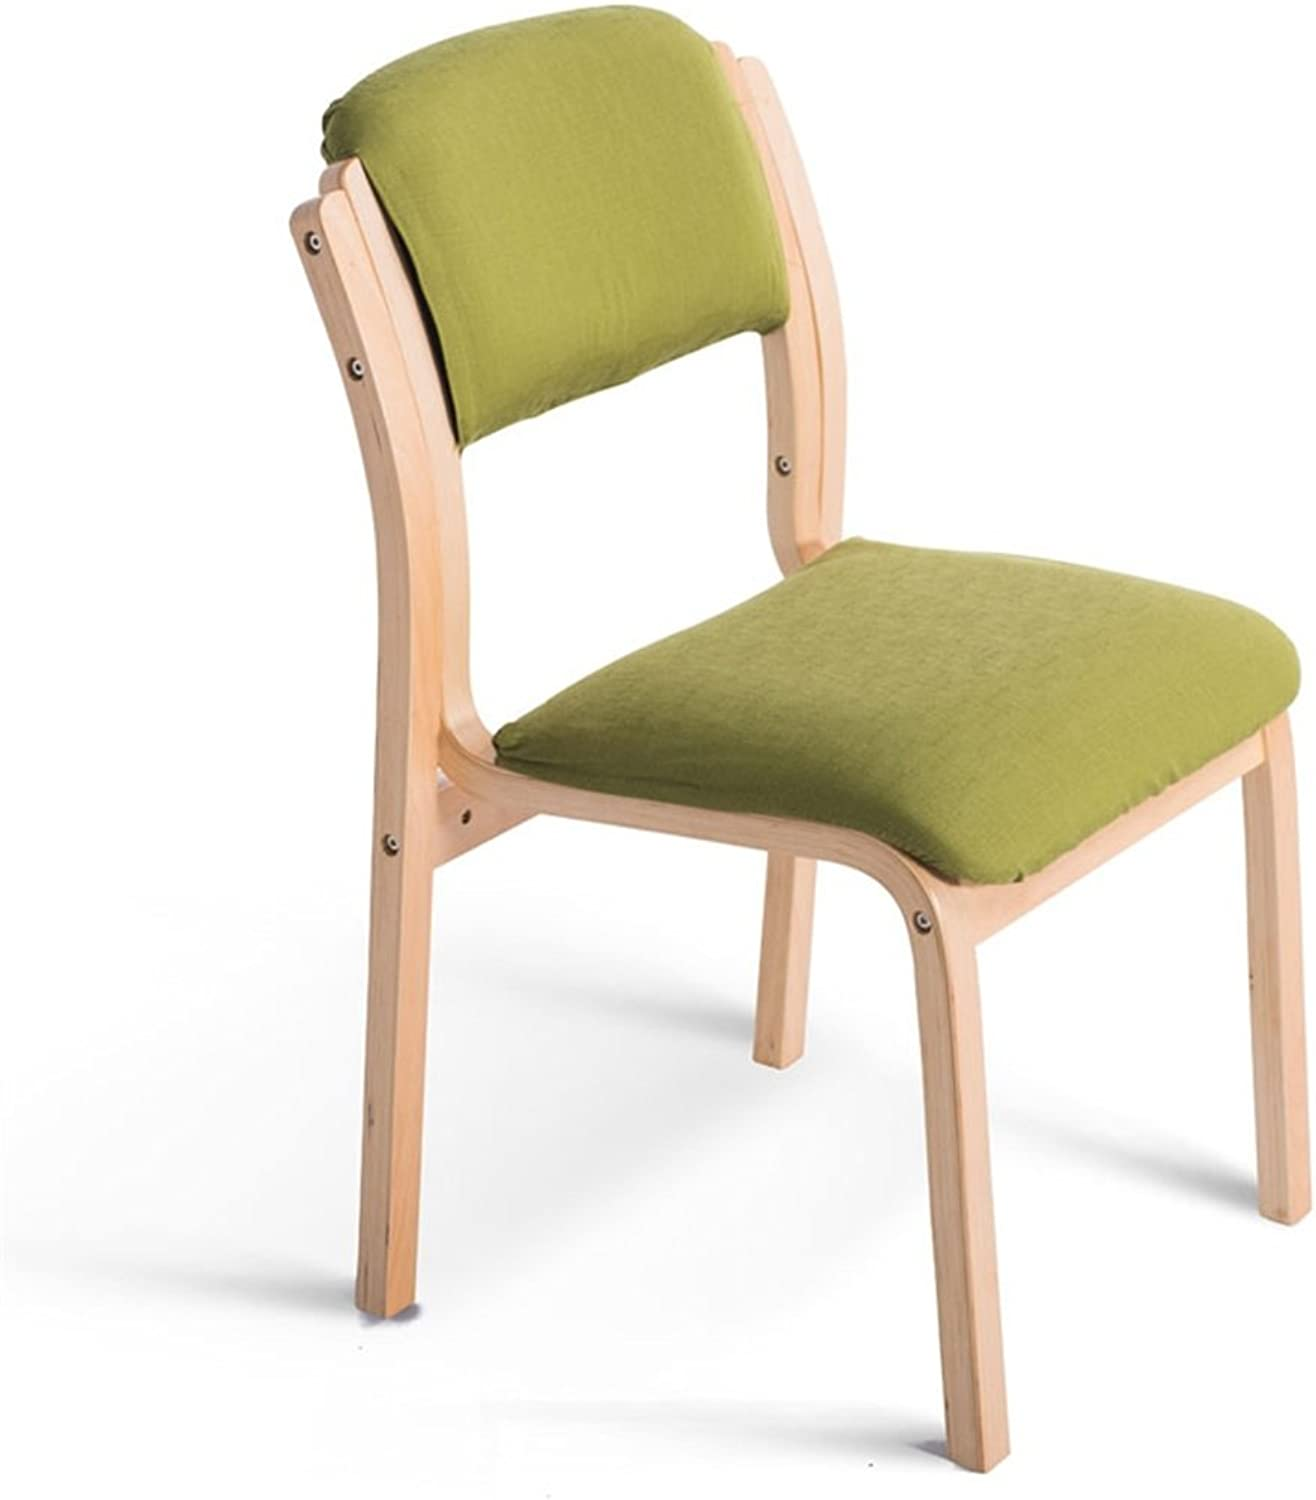 Wooden Chair Backrest Used Desk Dining Learning Makeup Chair Home & Commercial Concise Style Decoration Green